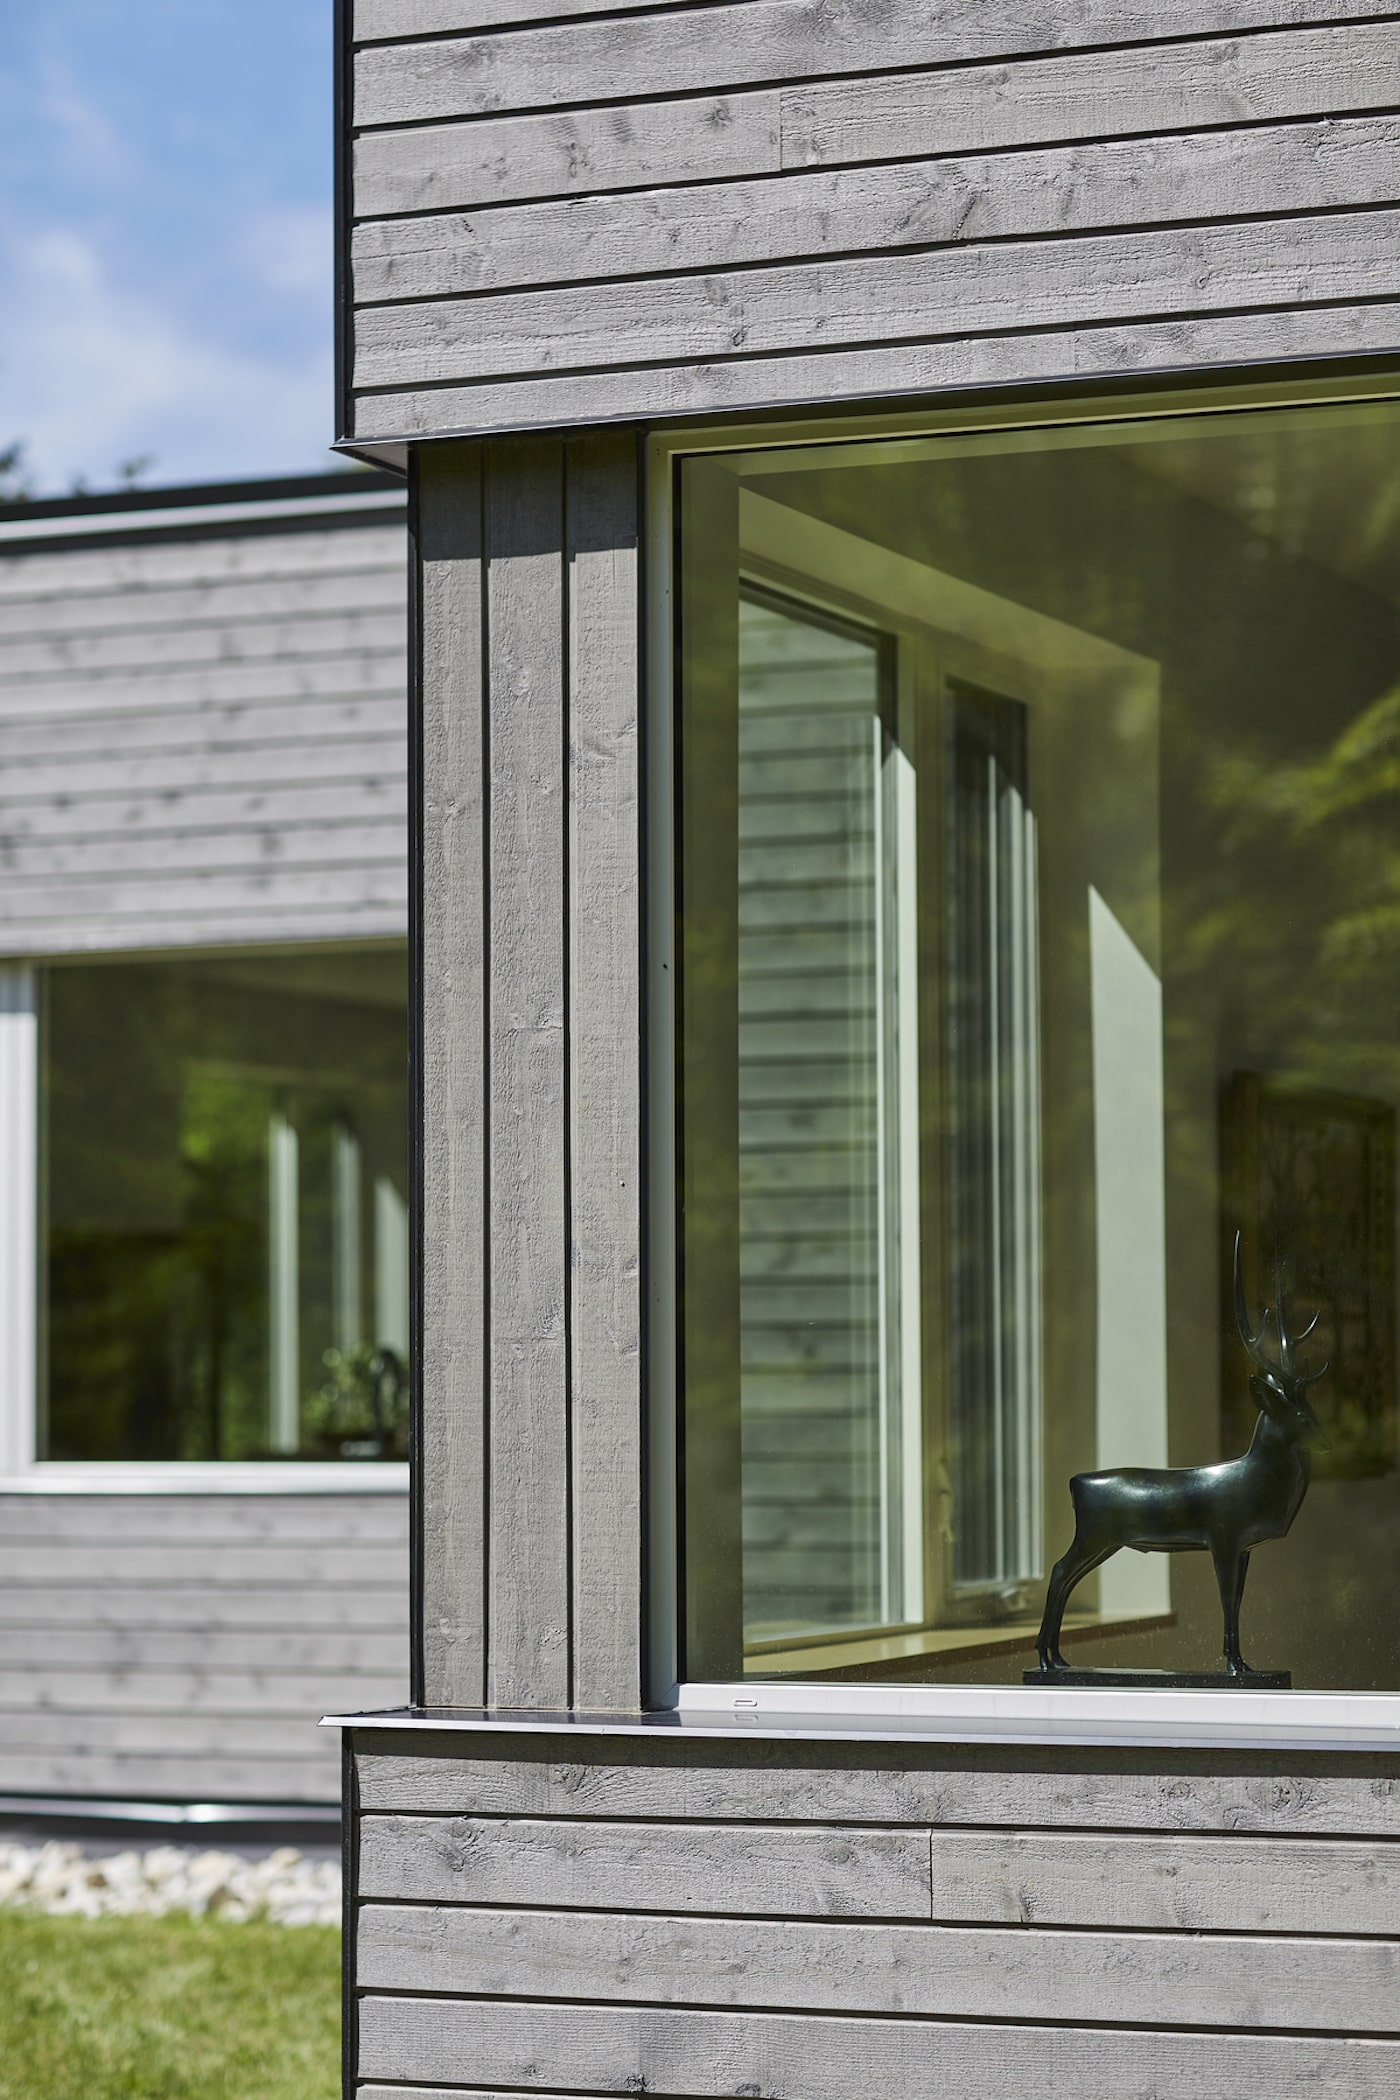 Timber cladding and window detail of eco house